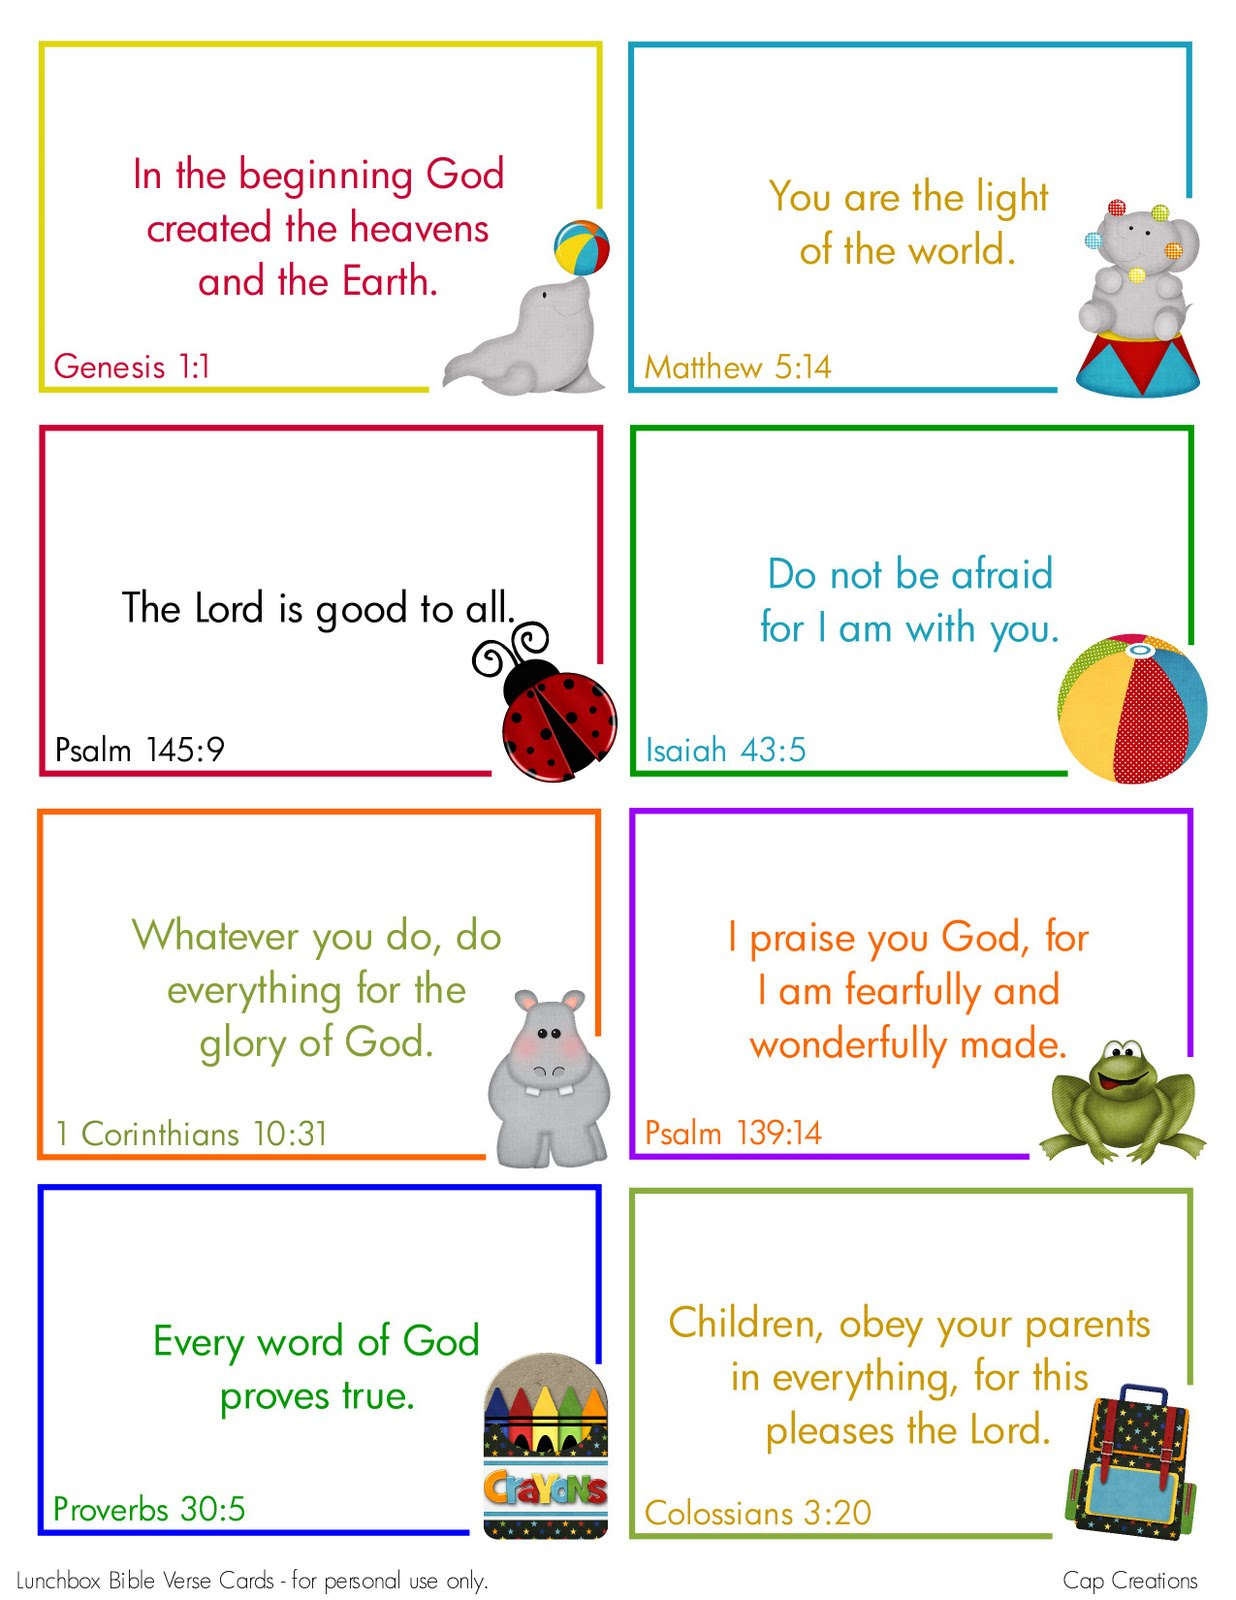 Cap Creations Free Printable Lunchbox Bible Verse Cards